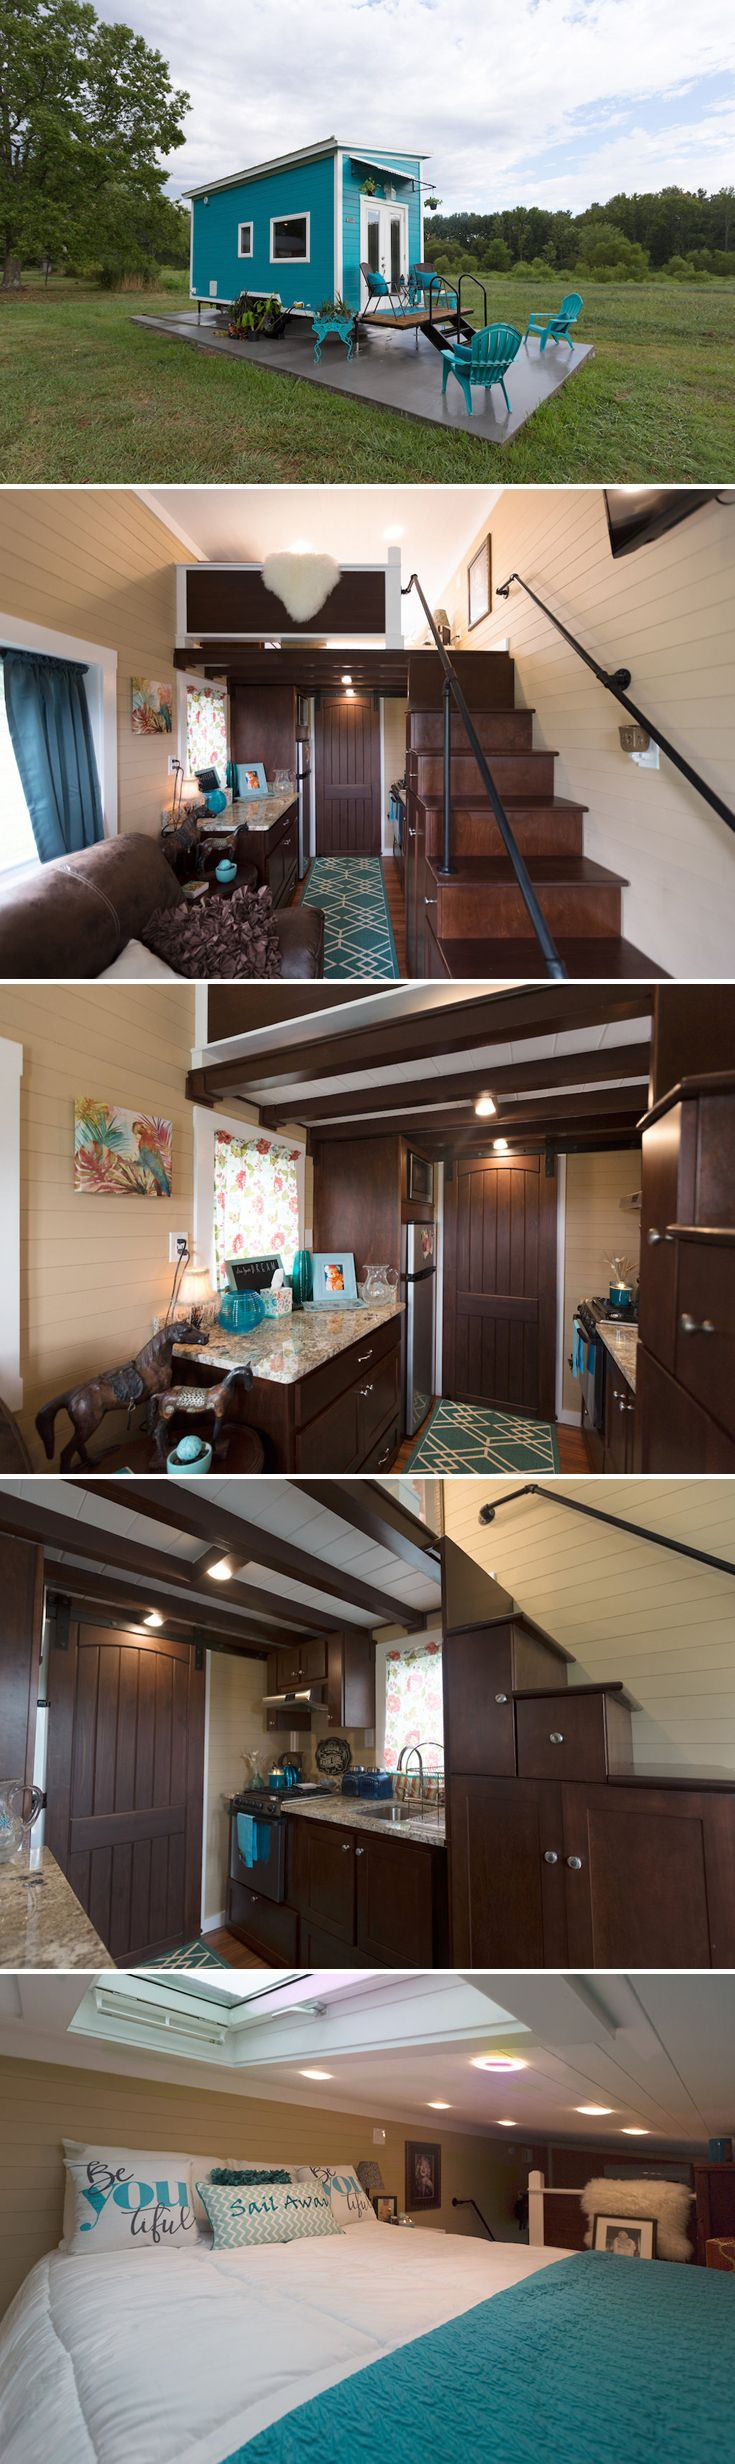 278 best Small Space Living images on Pinterest | Small houses ...